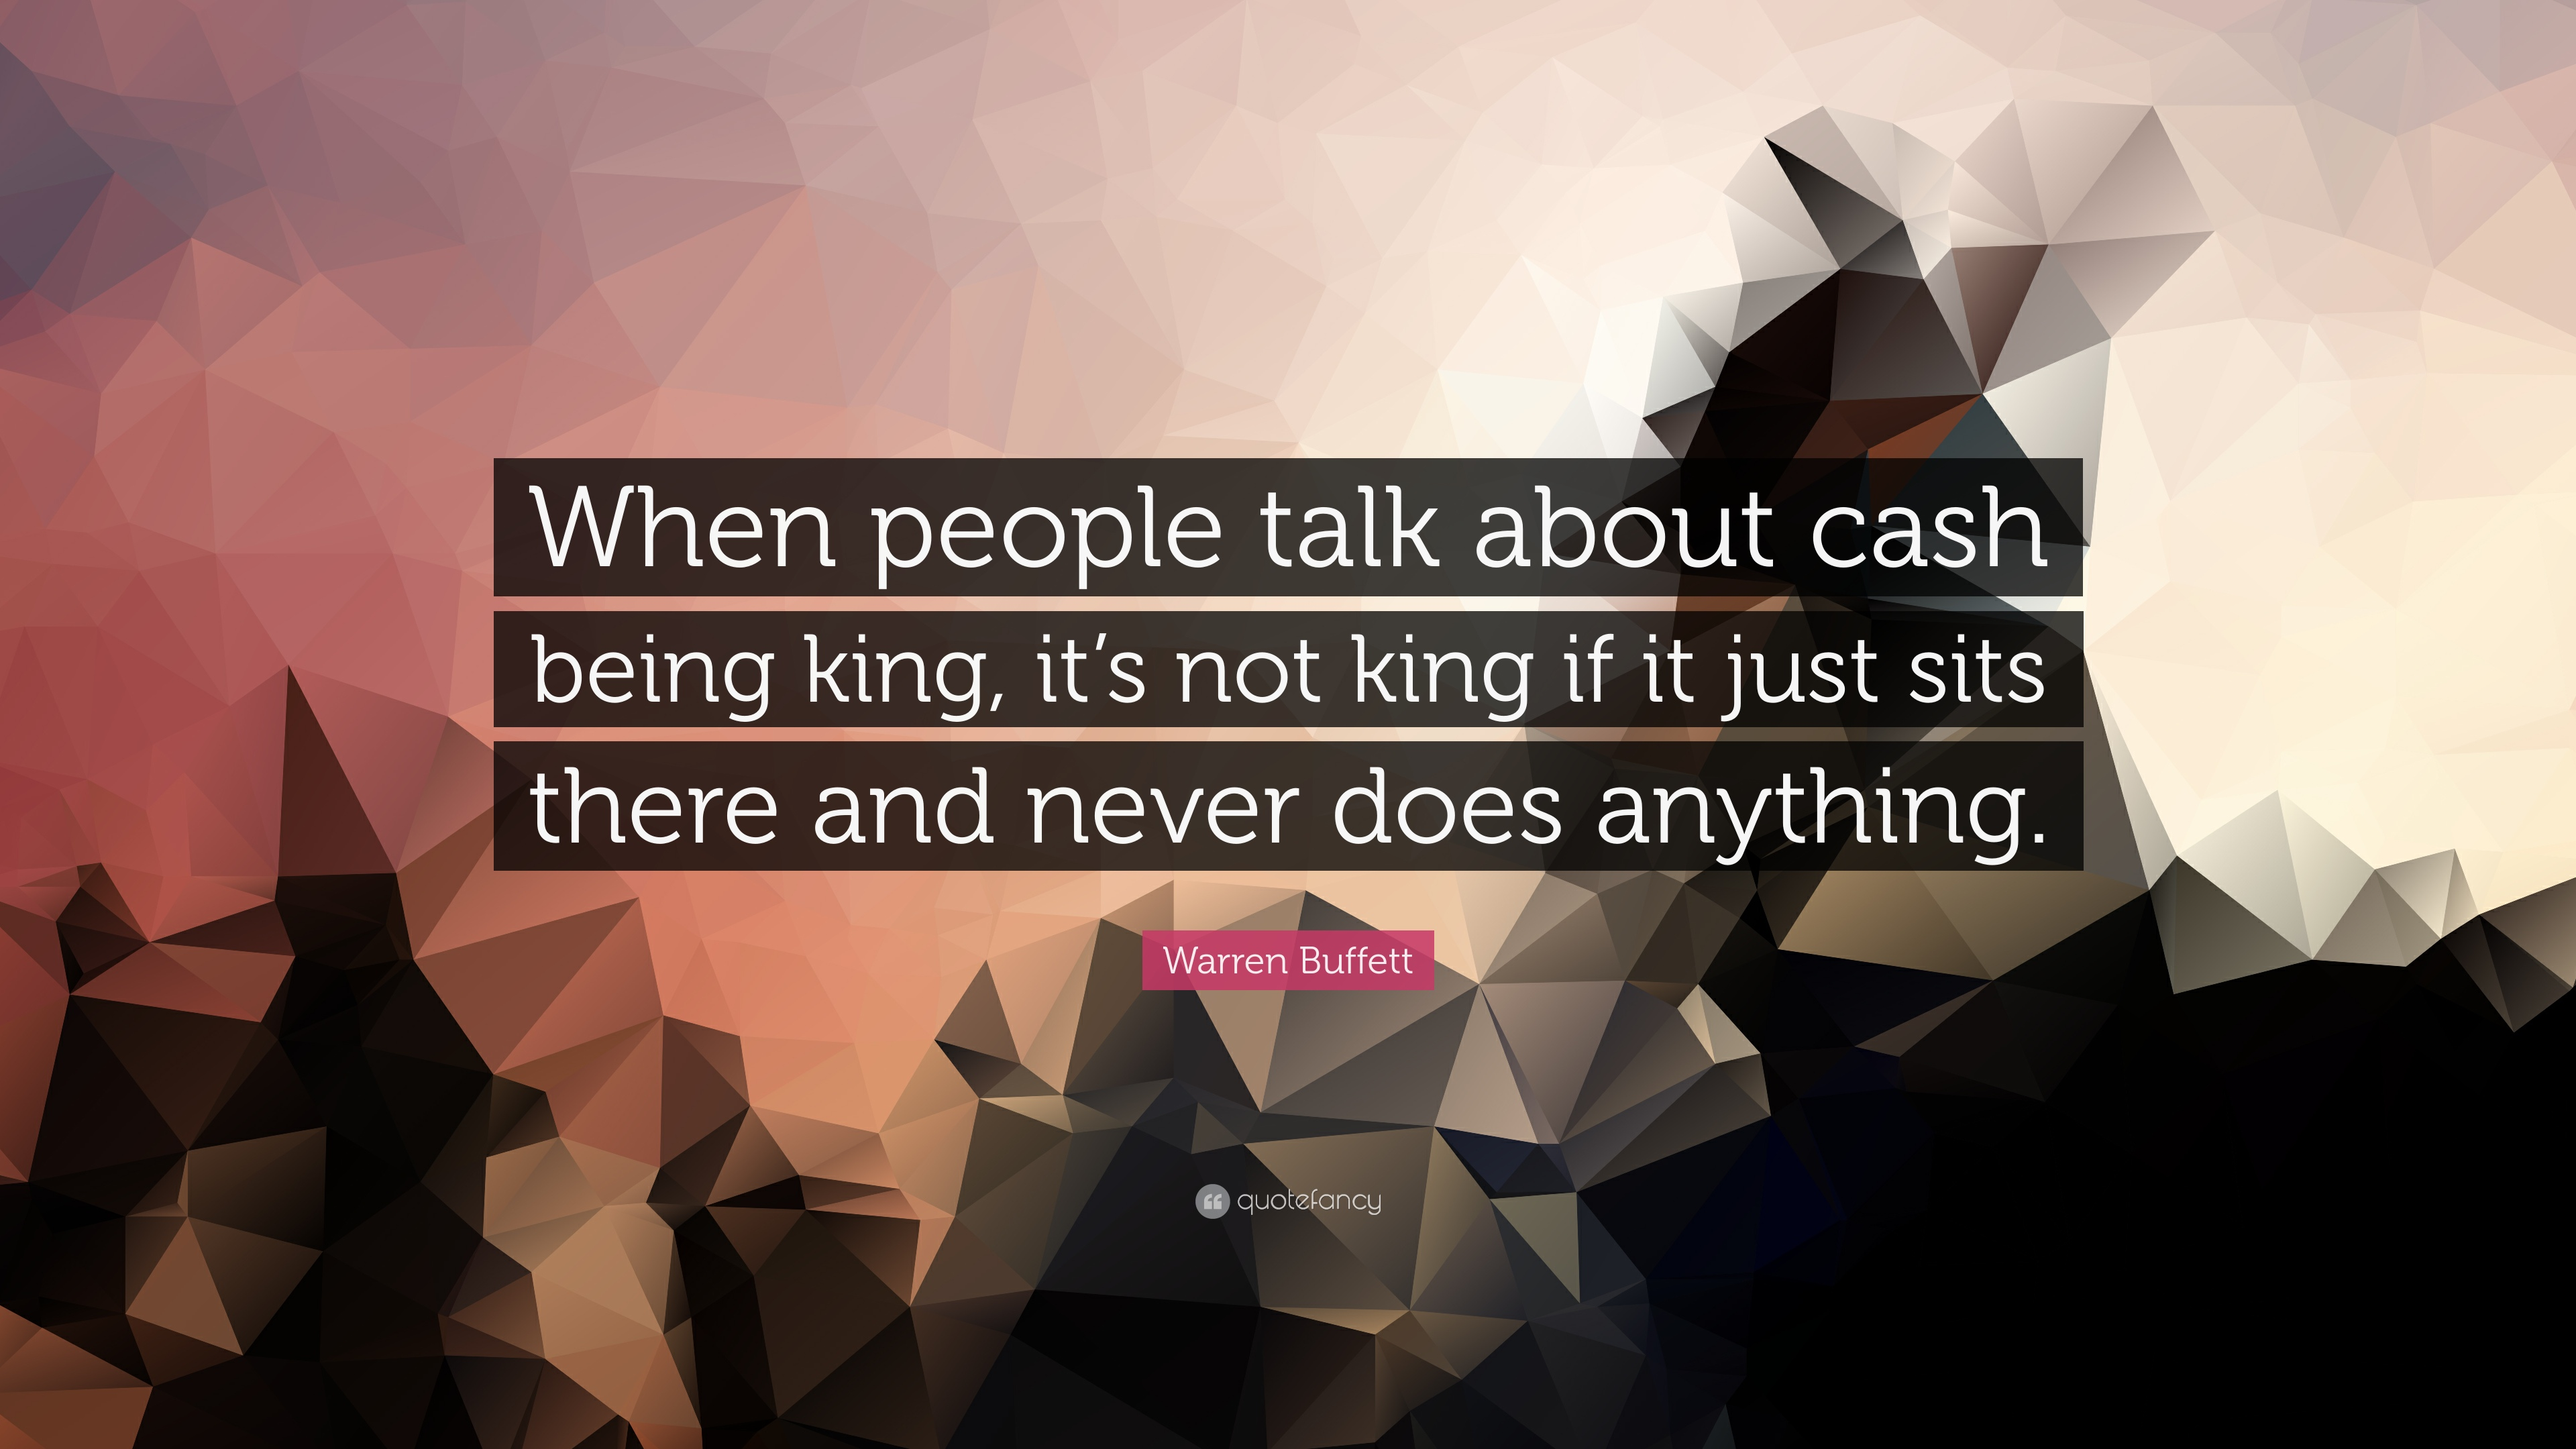 Cash king or it